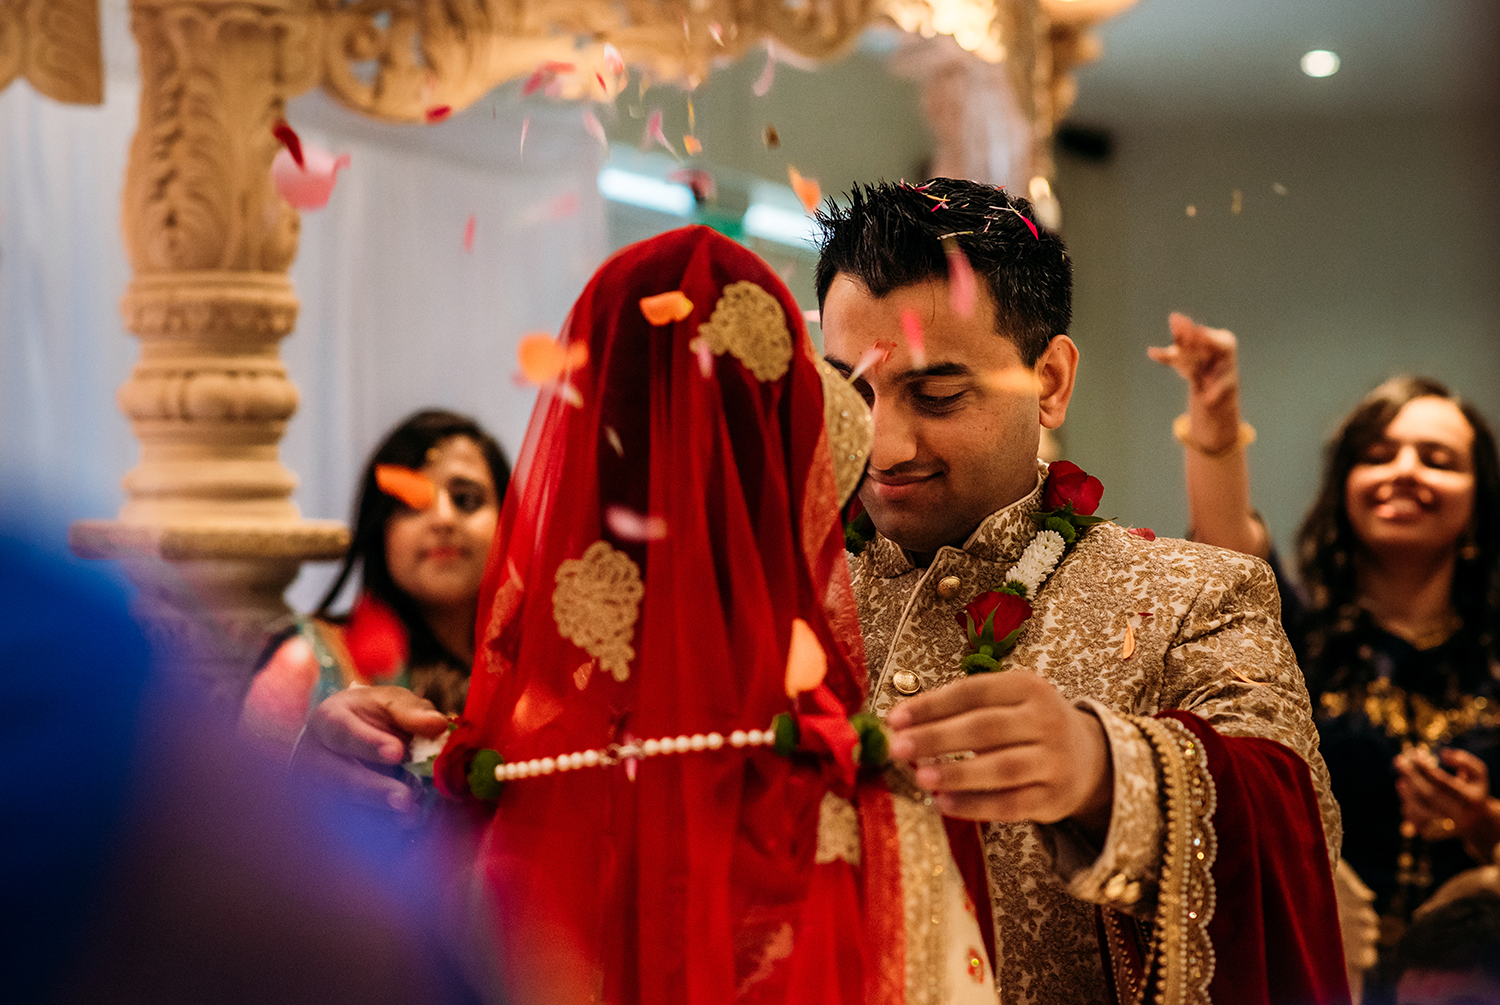 groom putting a necklace on the bride while confetti is thrown at them